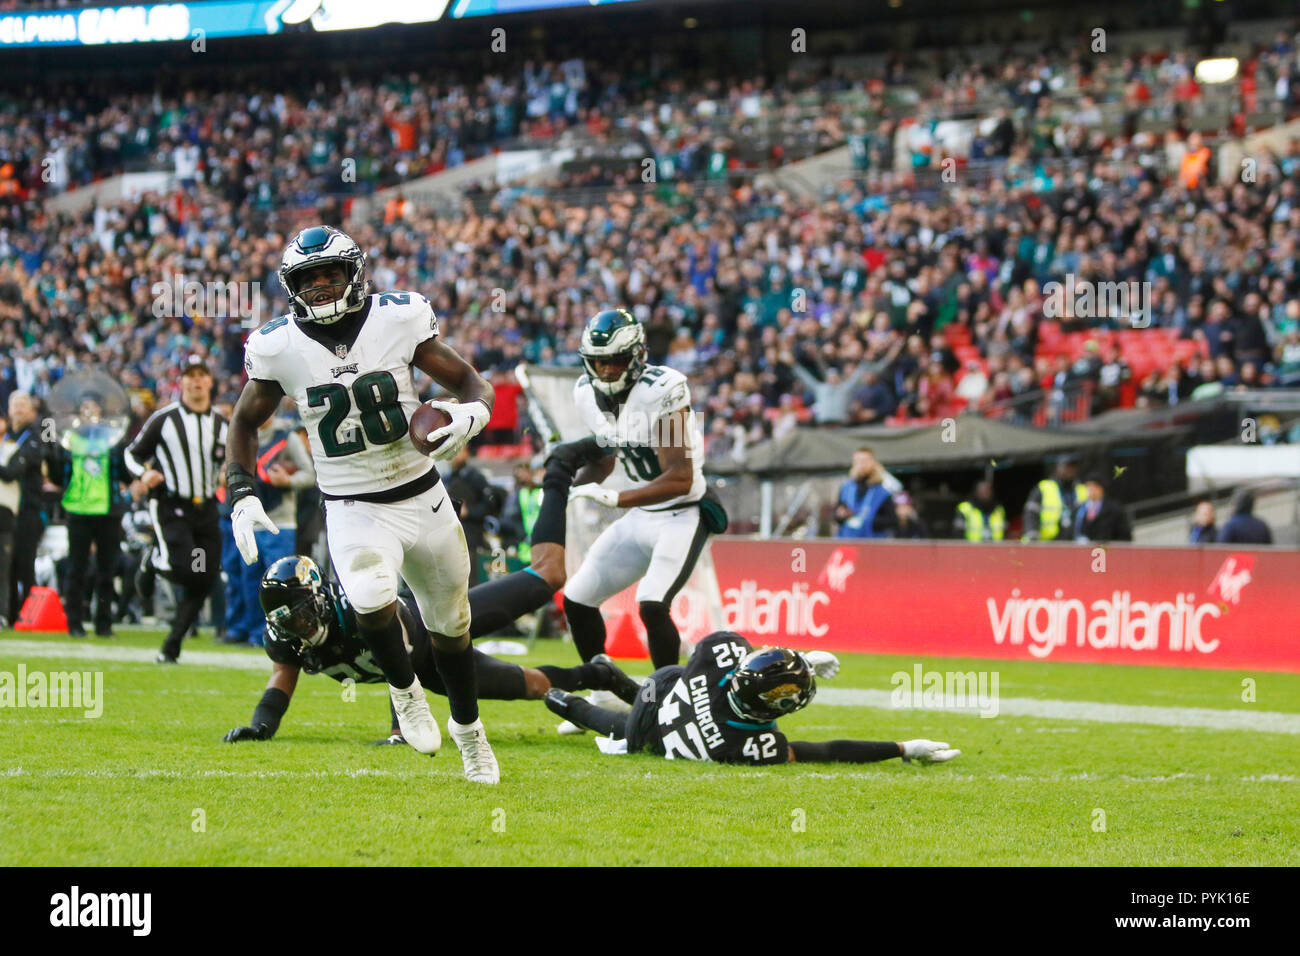 London, UK. 28 October 2018.  Philadelphia Eagles Running Back Wendell Smallwood (28) runs touch down   at the Eagles at Jaguars - credit Glamourstock Credit: glamourstock/Alamy Live News - Stock Image